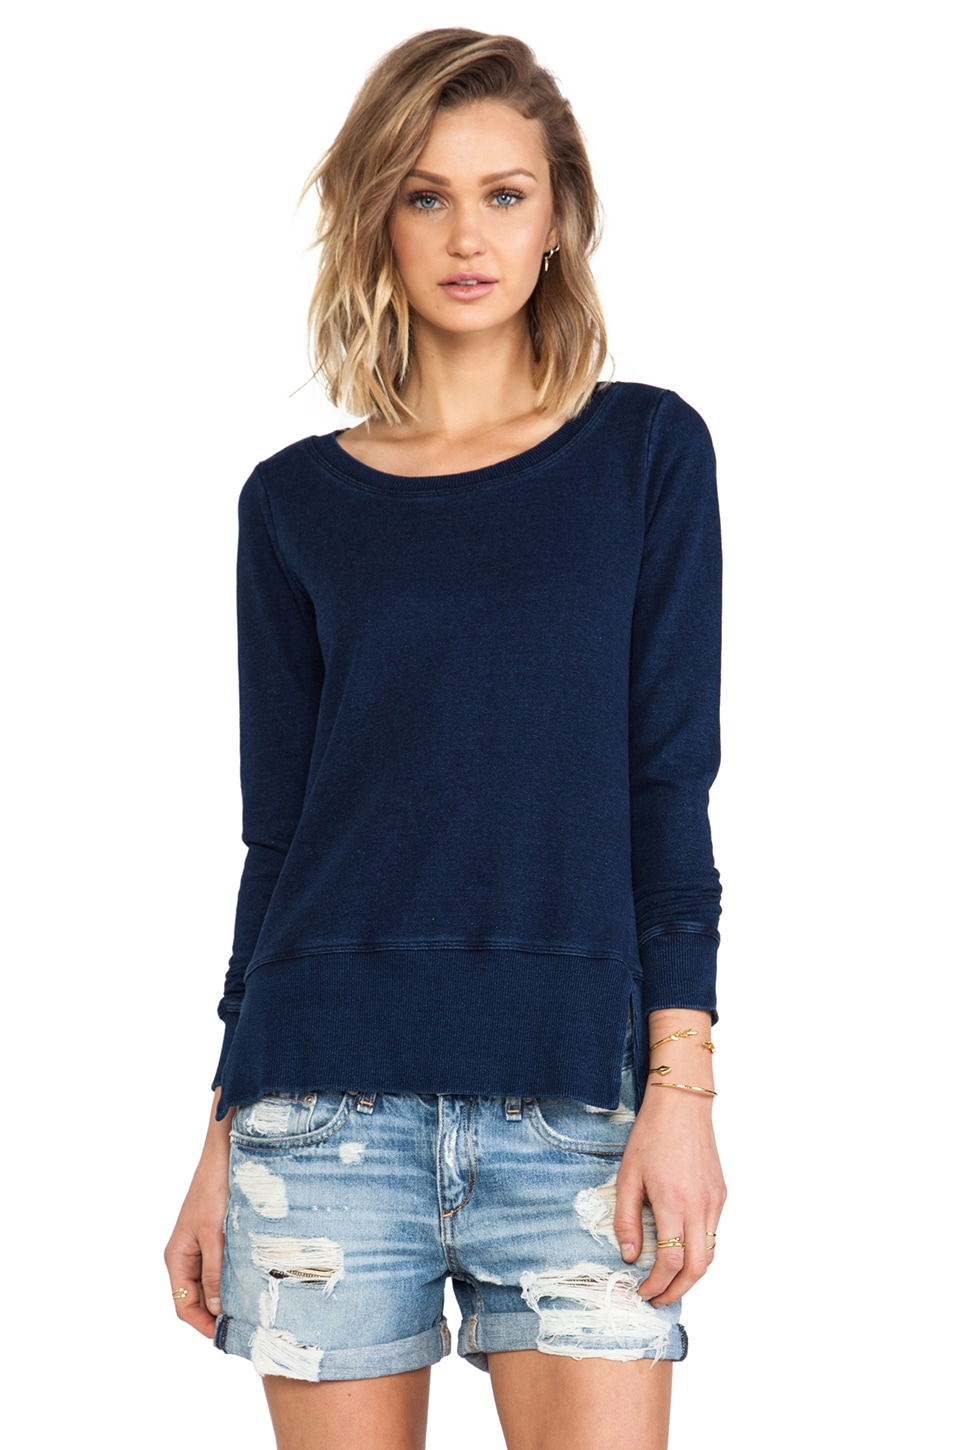 Splendid Indigo Blue French Terry Long Sleeve in Dark Indigo